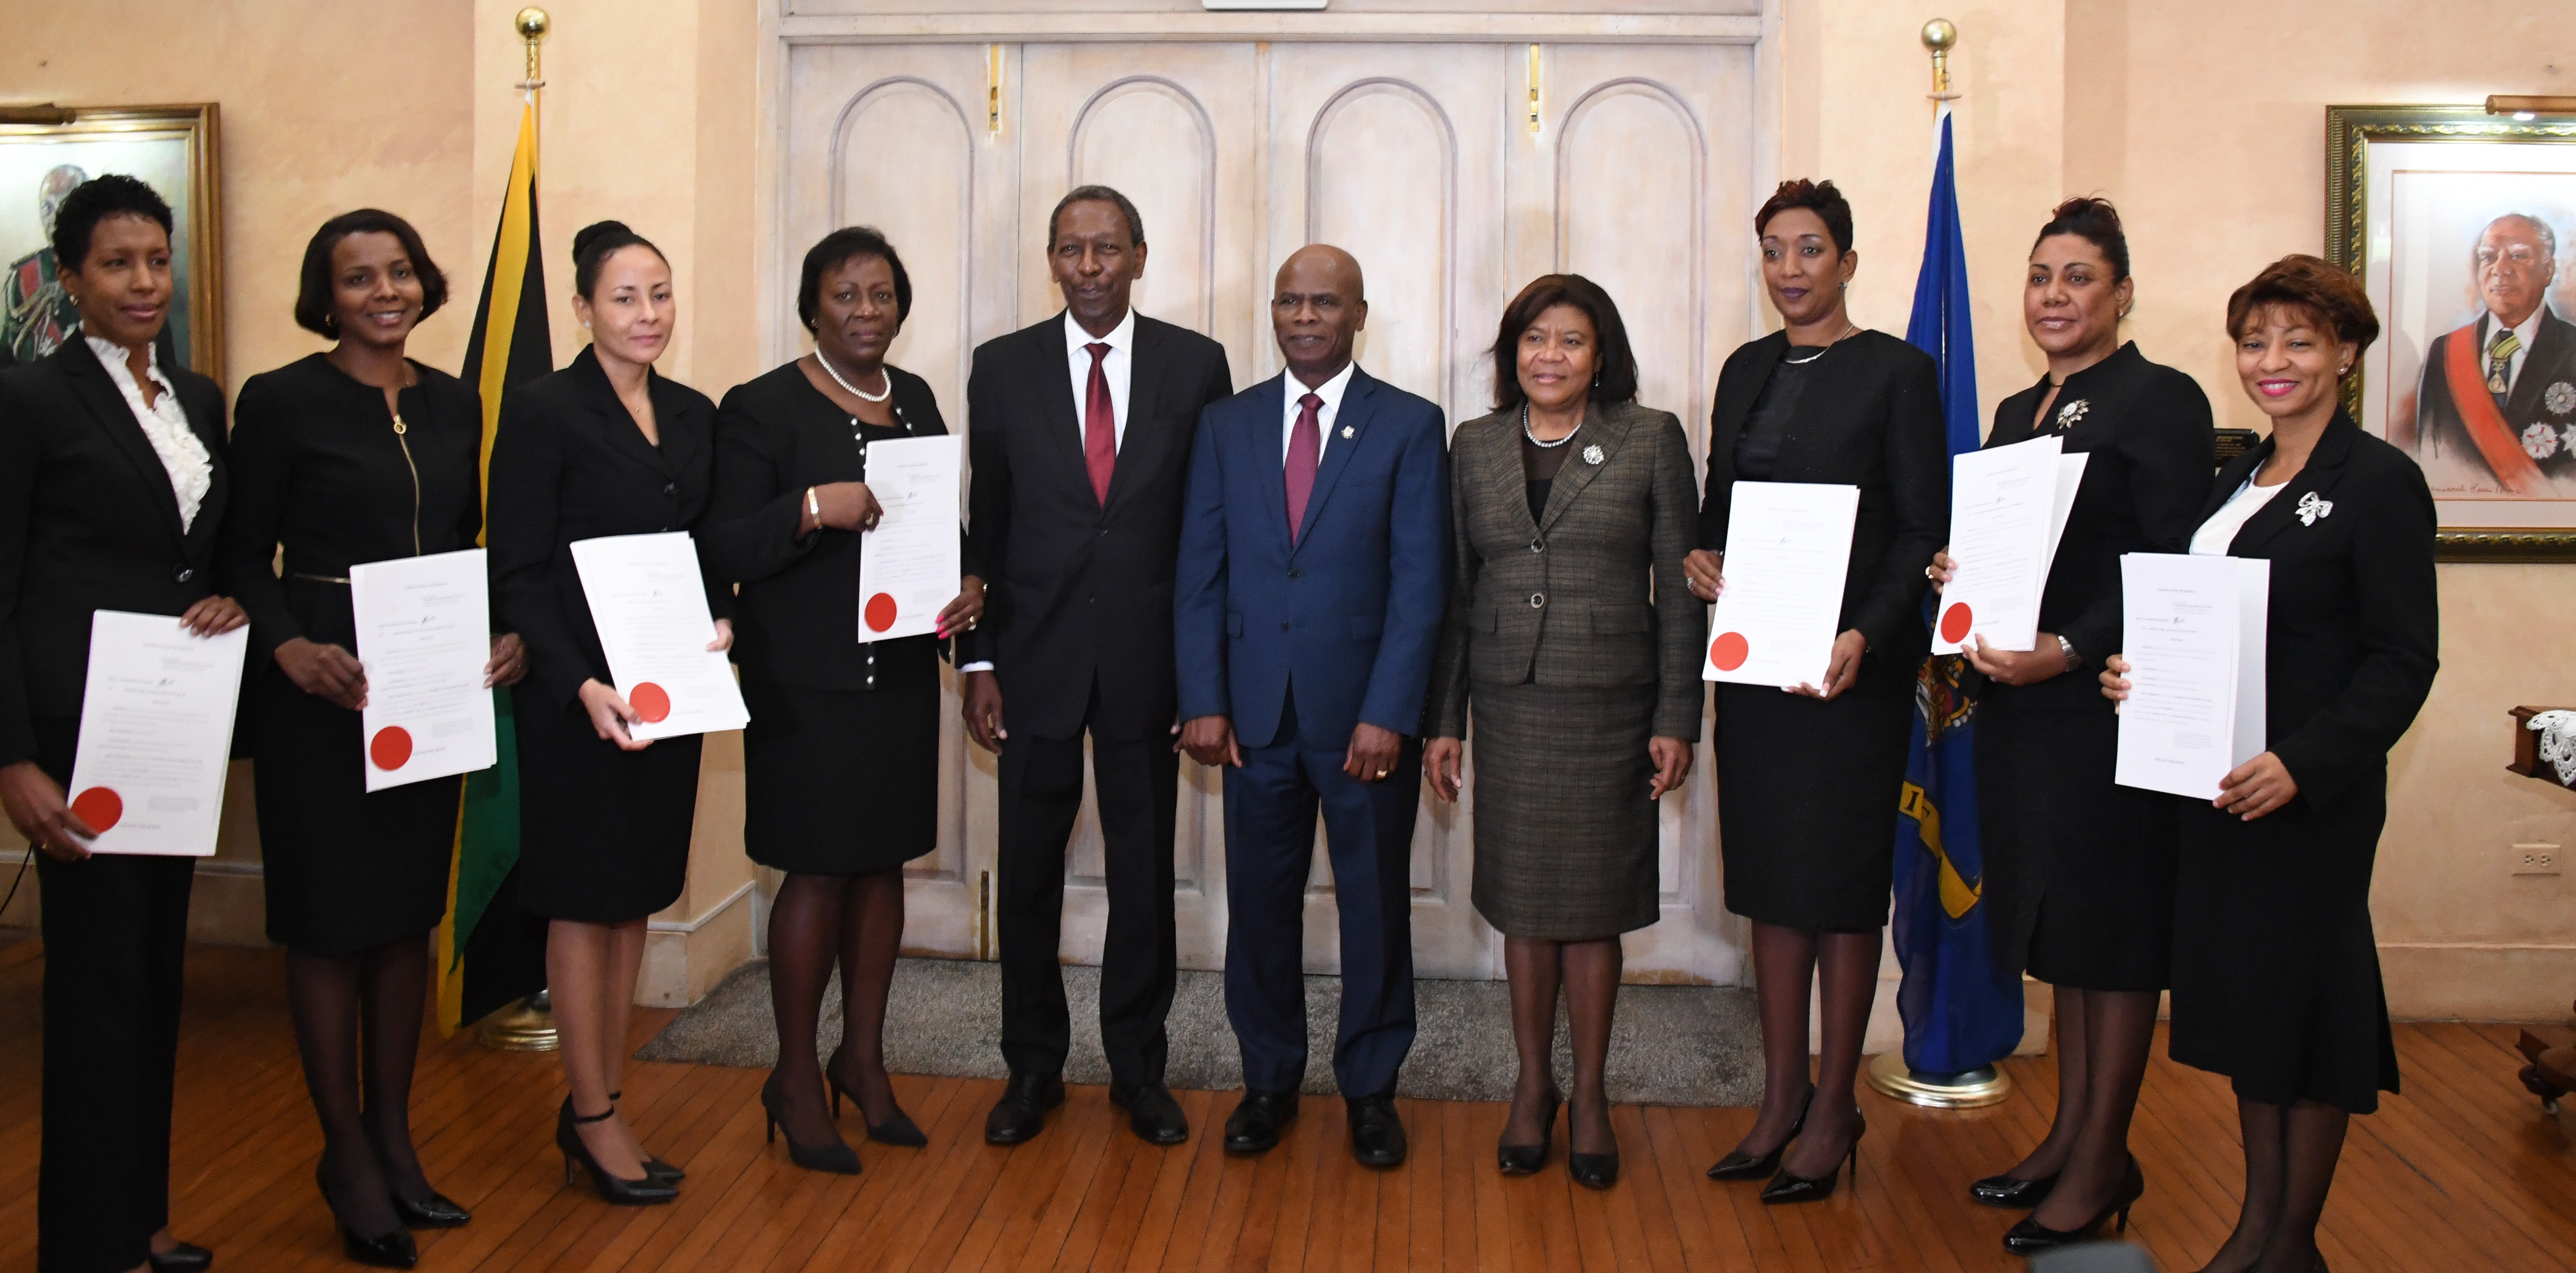 Custos Rotulorum for the parish of Kingston and Deputy Governor-General the Honourable Steadman Fuller (center) is joined by Hon. Mrs. Justice Zaila McCalla – Chief Justice (4th right), the Hon Mr. Justice Denis Morrison - President of the Court of Appeal (5th left) and the judges sworn in to serve in the Supreme Court and as Master-in Chamber, at King's House this morning (January 5, 2018). The Judges from left are Her Honour Mrs. Sonya M. Wint Blair, Her Honour Mrs. Stephanie A. Jackson Haisley, Her Hon. Miss Carolyn N. Tie, Her Honour Miss Judith A. Pusey, Her Honour Mrs. Simone A.Y. Wolfe Reece, Her Honour Miss Anne-Marie A. Nembhard and Her Honour Mrs. Natalie T. Hart Hines.